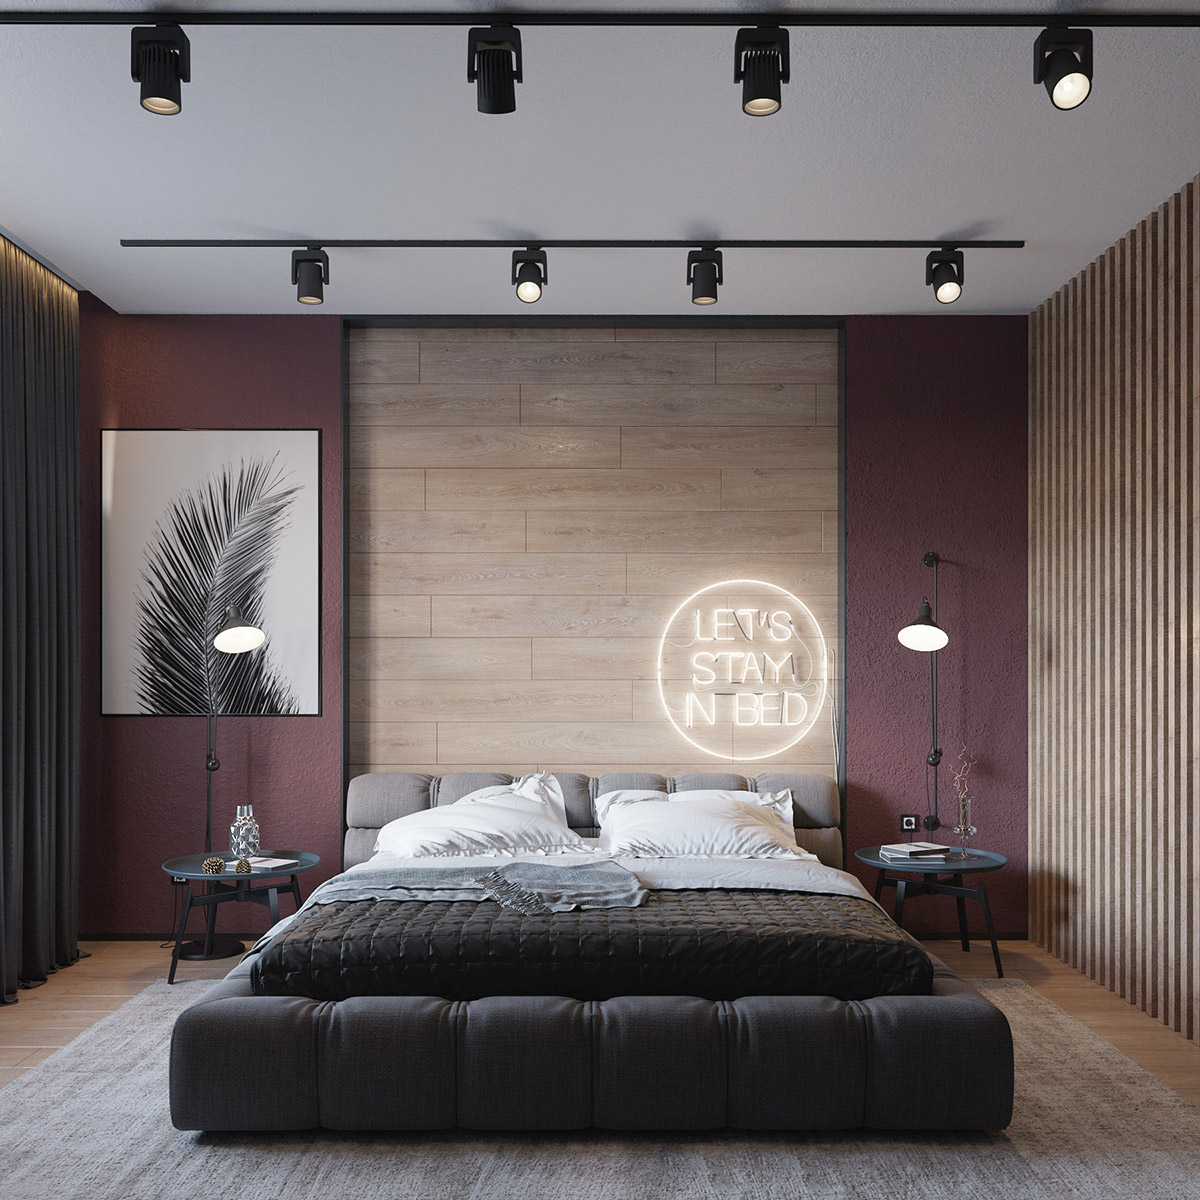 lets-stay-in-bed-bedroom